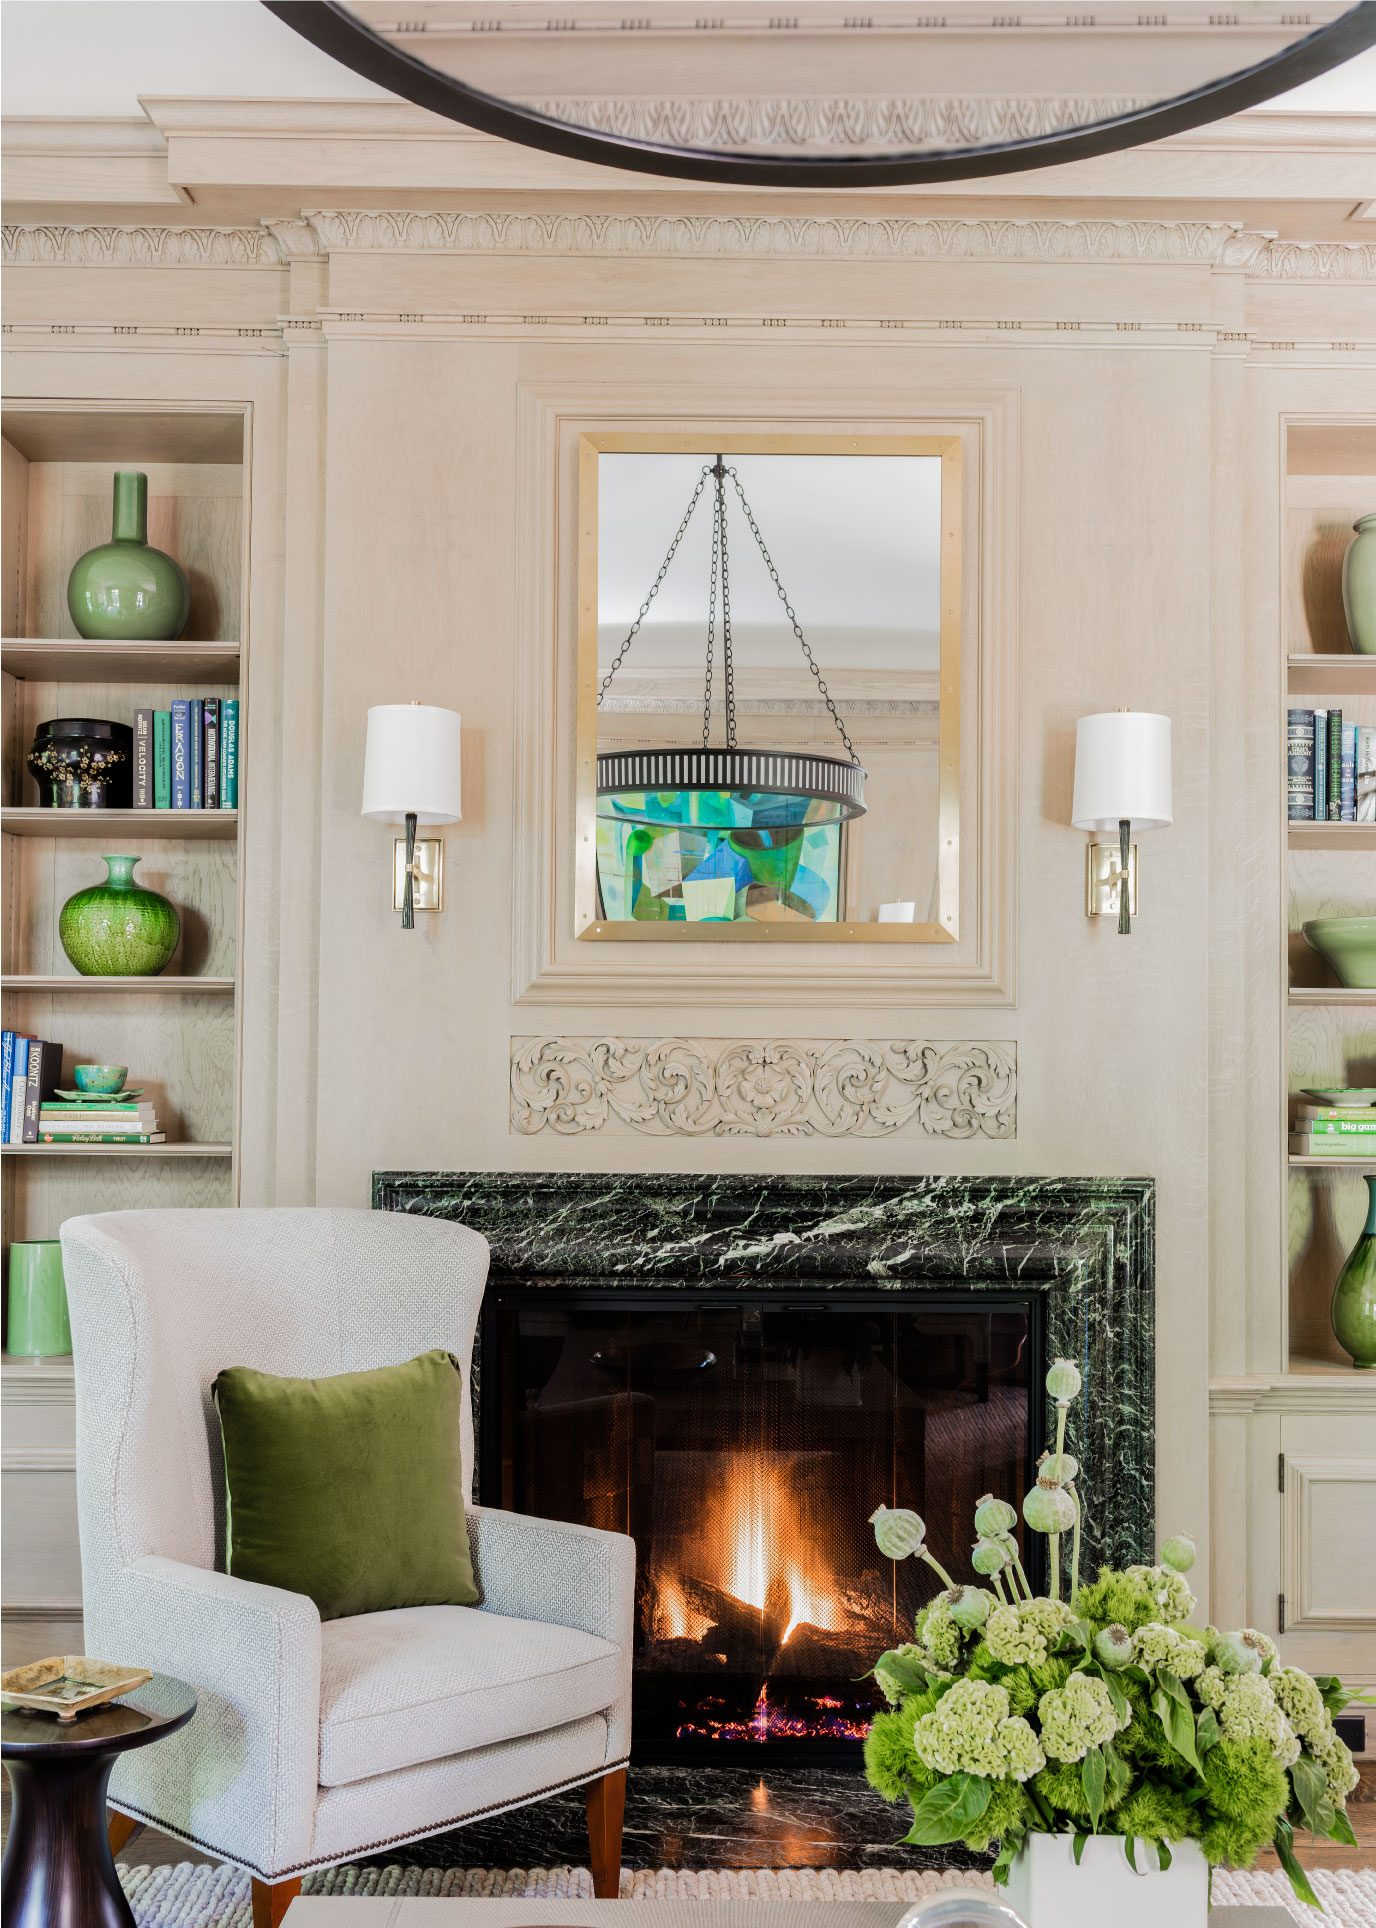 transitional living room, wall niche, built in bookcase, wood burning fireplace, transtional fireplace surround, contemporary chandelier, aged iron chandelier, transitional chandelier, applied wall moulding, transitional wall sconces, green marble fireplace surround